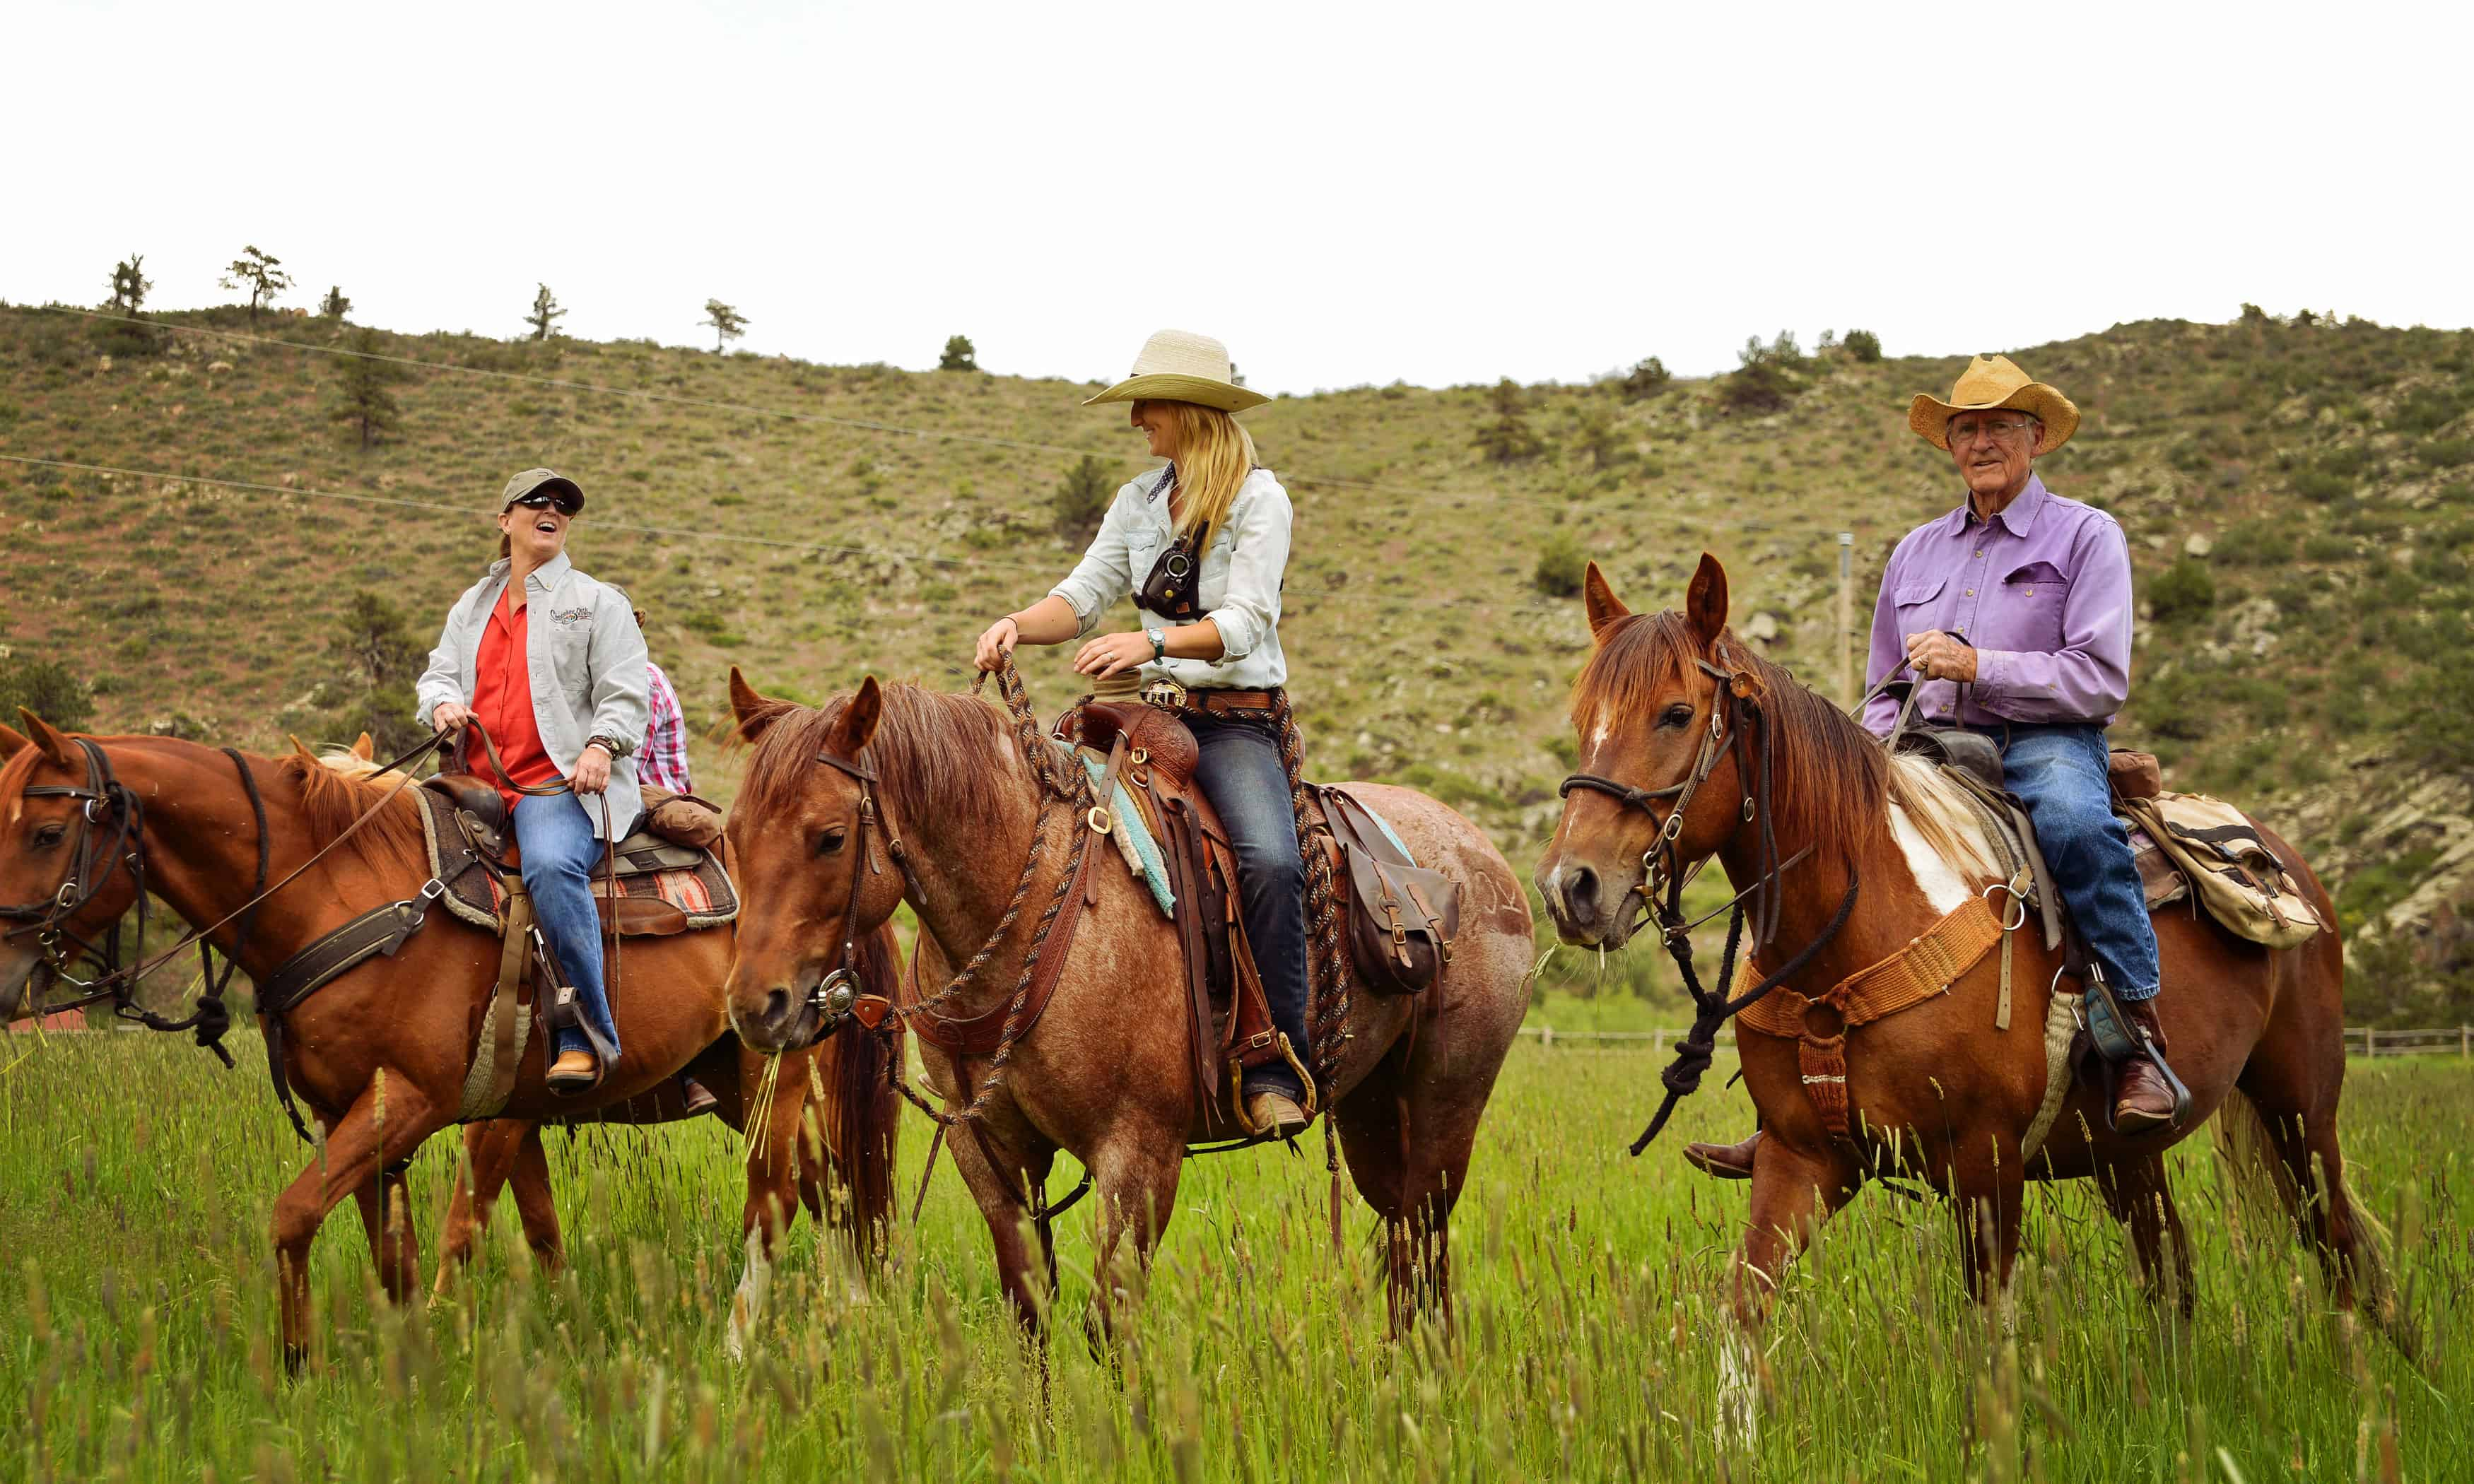 Cherokee park ranch dude ranch for cowgirl dream getawy